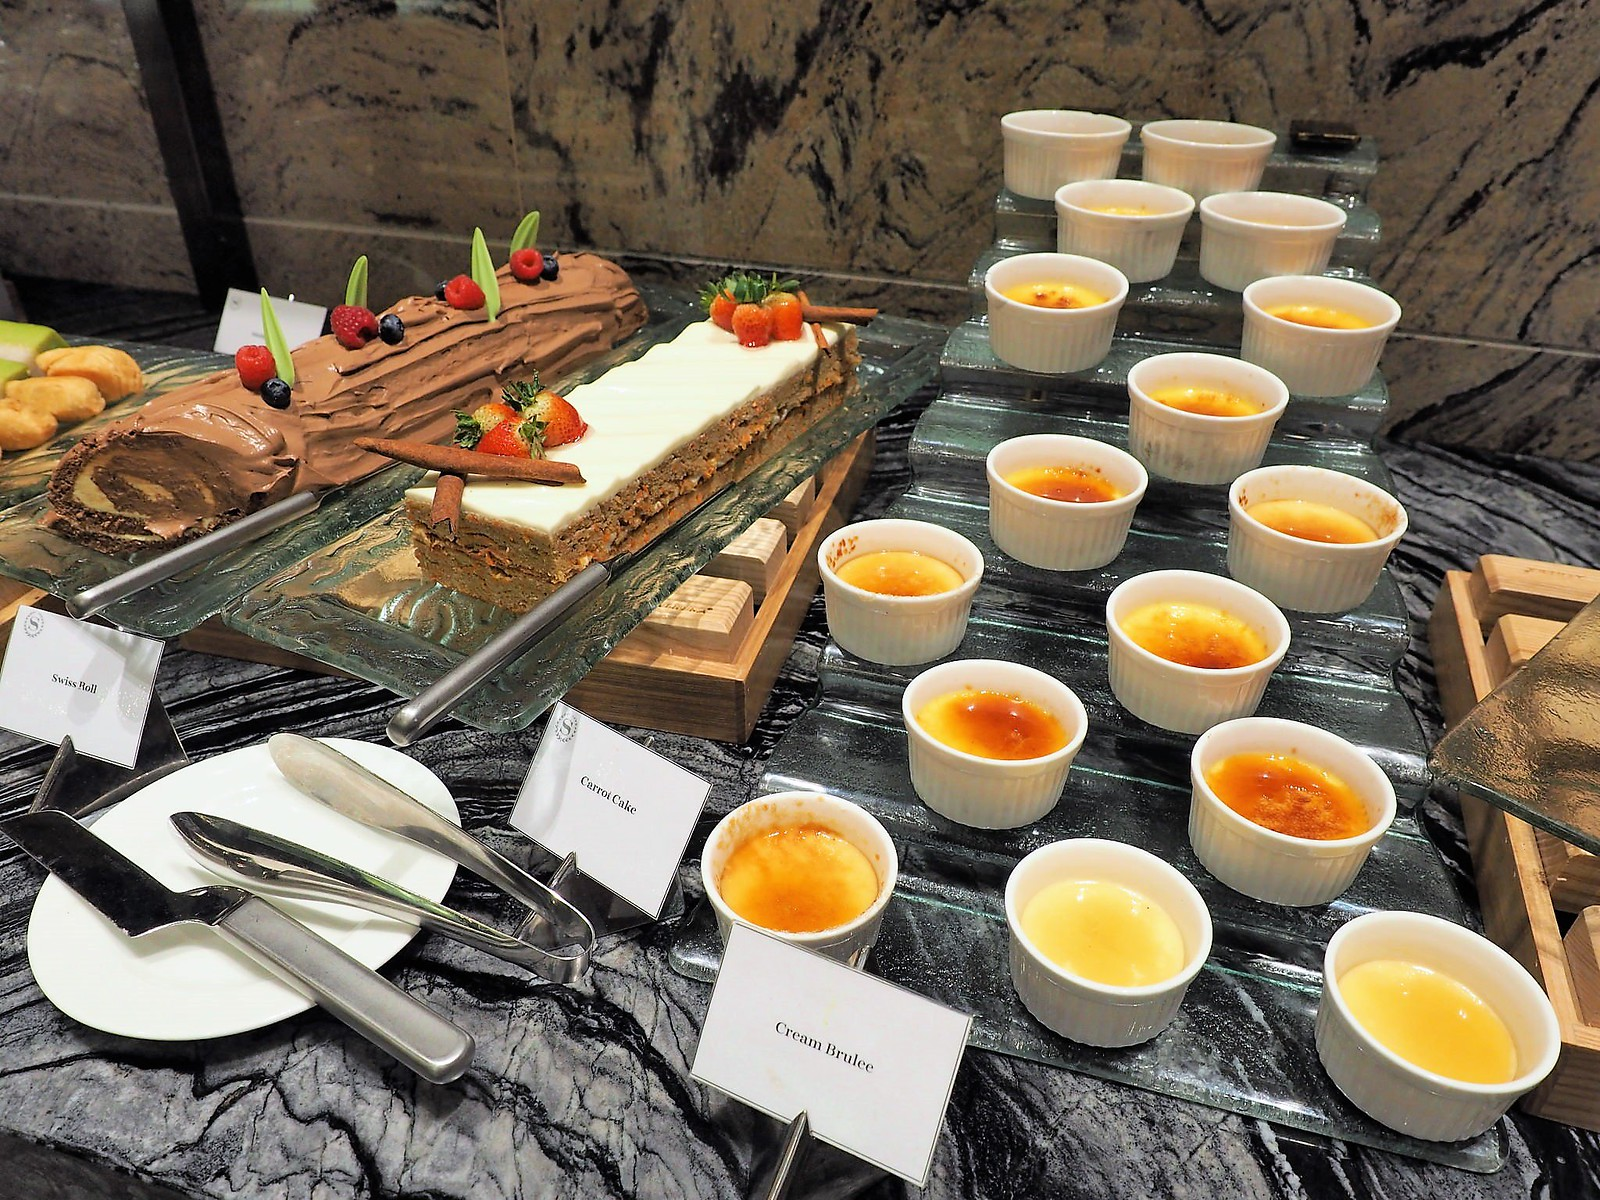 Creme Brulee, Carrot Cake and Swiss Roll